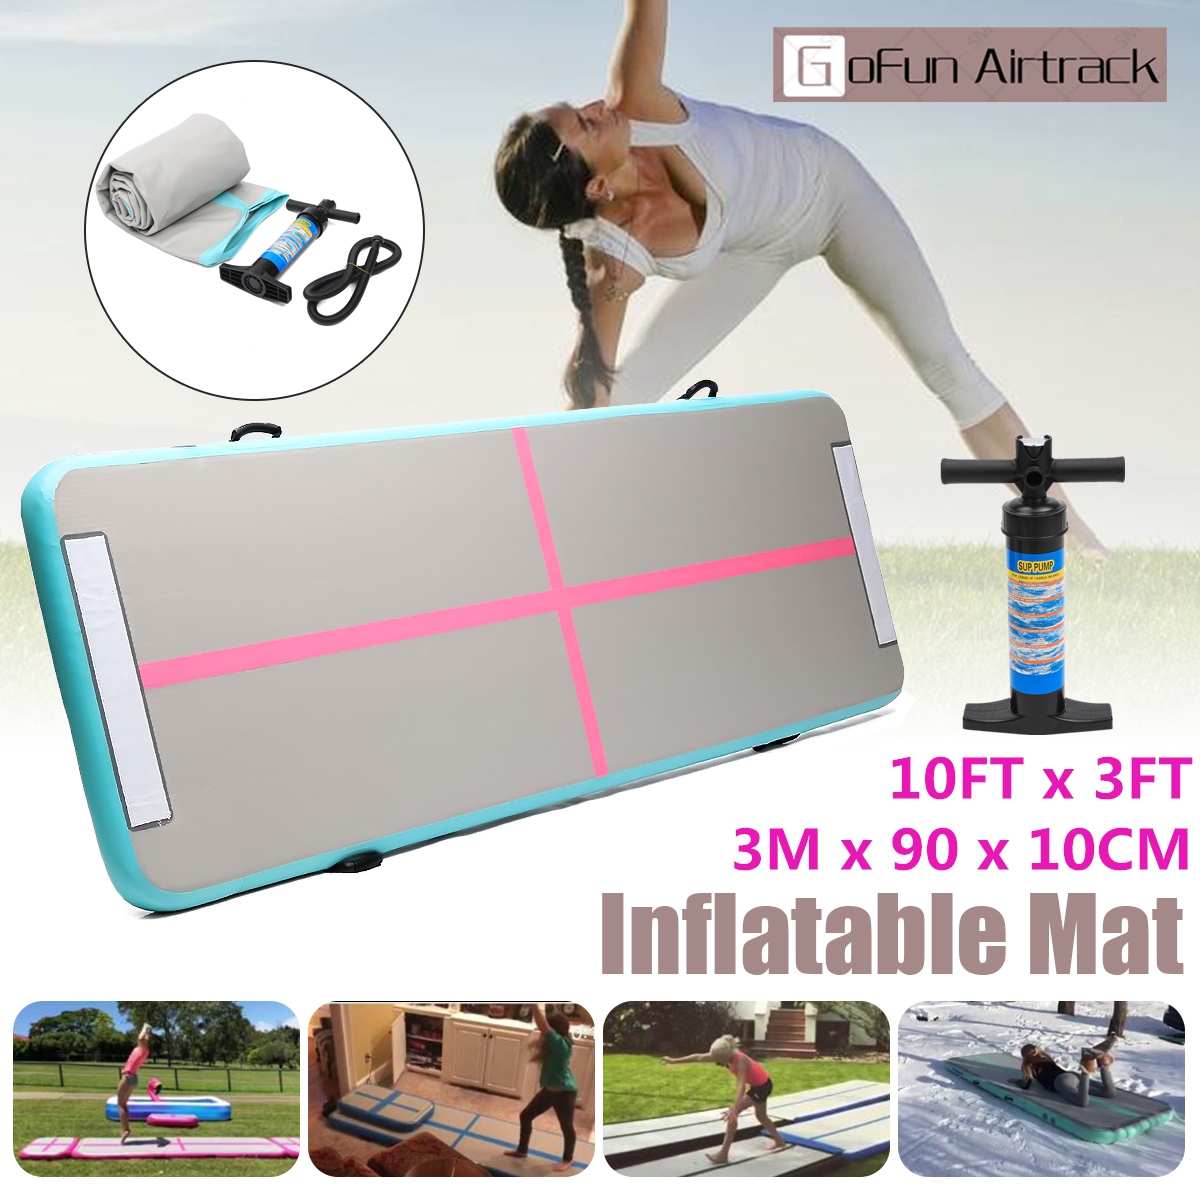 GoFun 300x90x10cm AirTrack Inflatable Air Track Tumbling Floor Home Gymnastics Yoga Mat GYM with Manual pump new arrival yoga mats 0 9 3m inflatable tumble track trampoline air track floor home gym gymnastics inflatable air tumbling mat